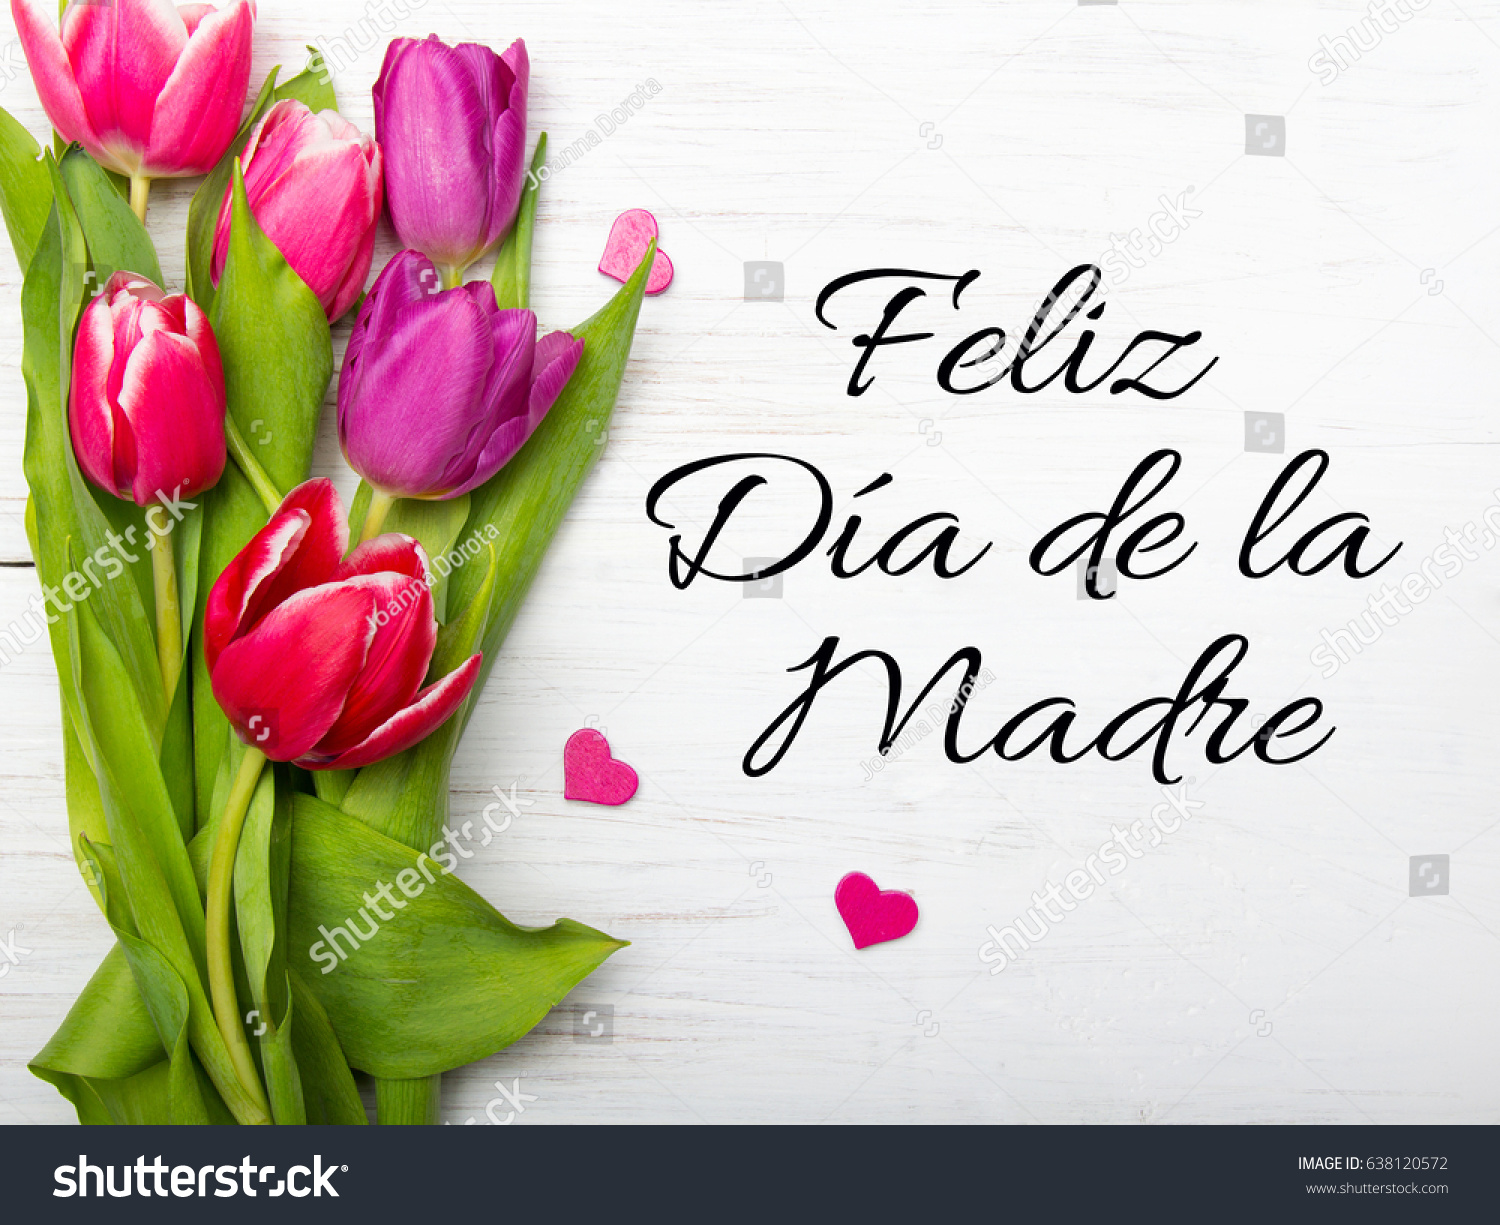 Mothers day card spanish words happy stock photo royalty free mothers day card spanish words happy stock photo royalty free 638120572 shutterstock m4hsunfo